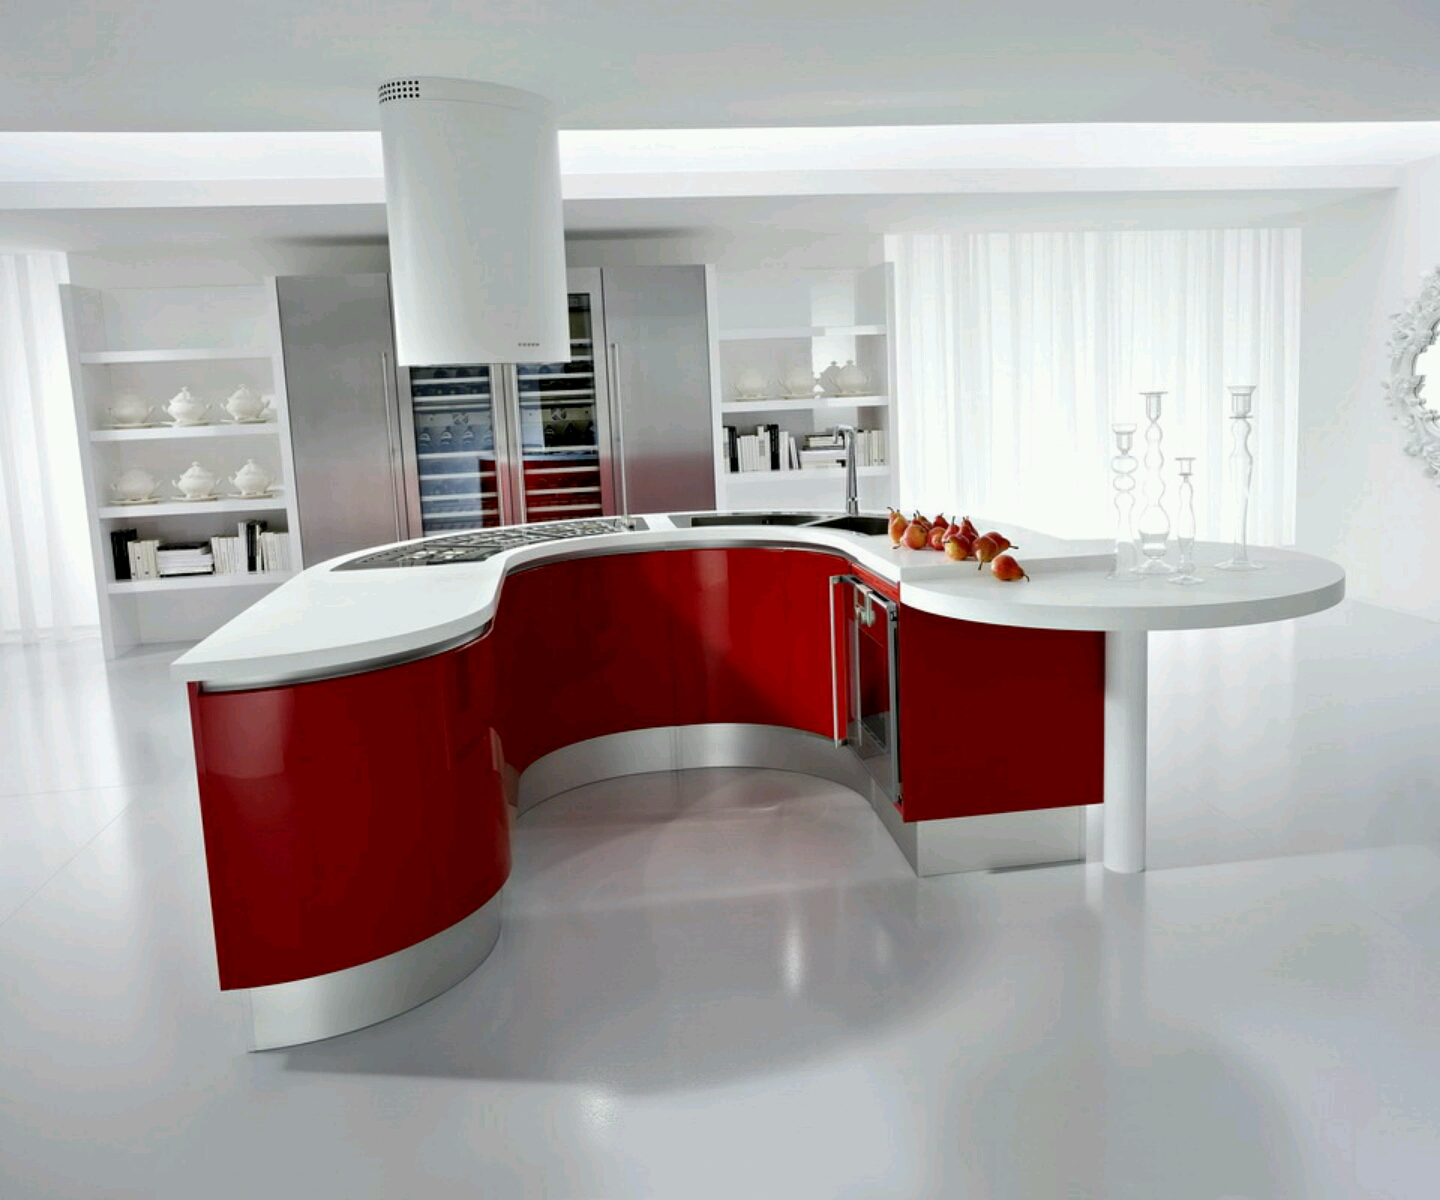 Modern kitchen cabinets designs ideas furniture gallery for Kitchen designs contemporary